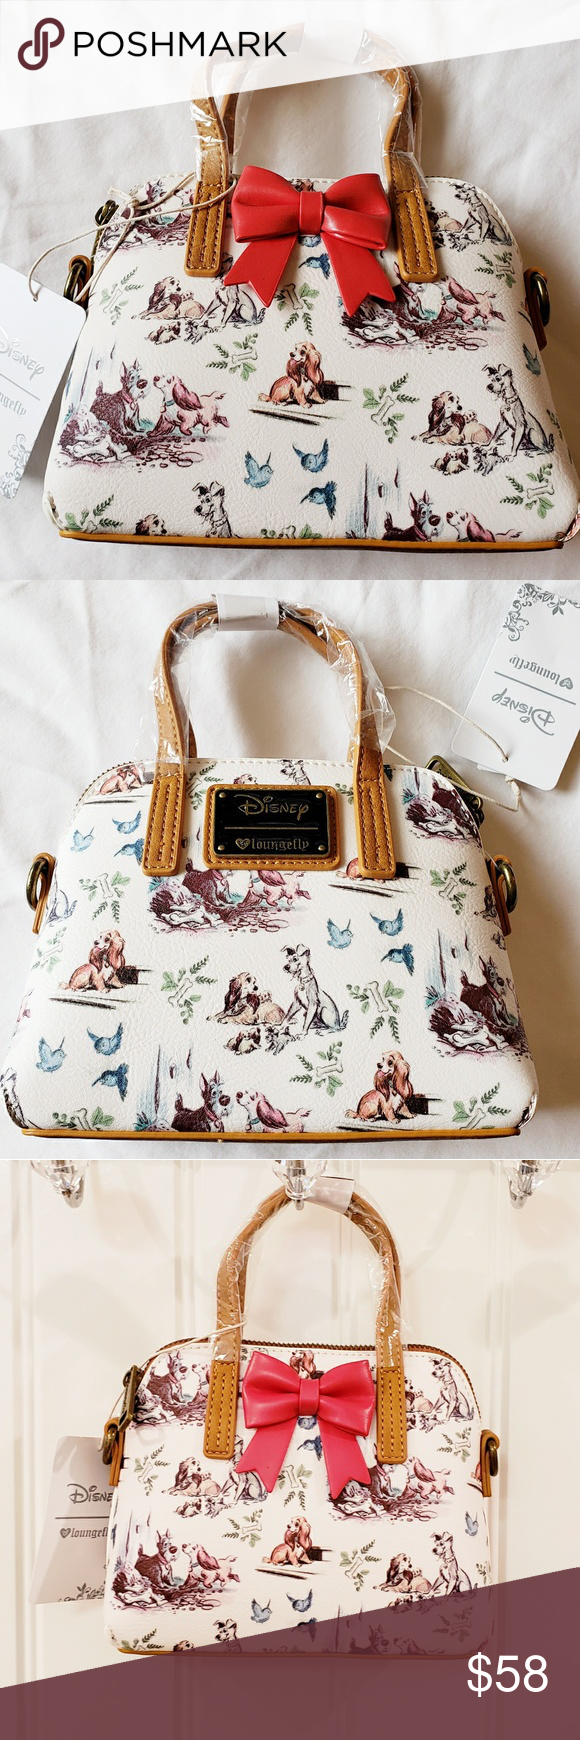 Disney Loungefly Lady And The Tramp Micro Mini Bag Mini Bag Faux Leather Bag Loungefly Bag